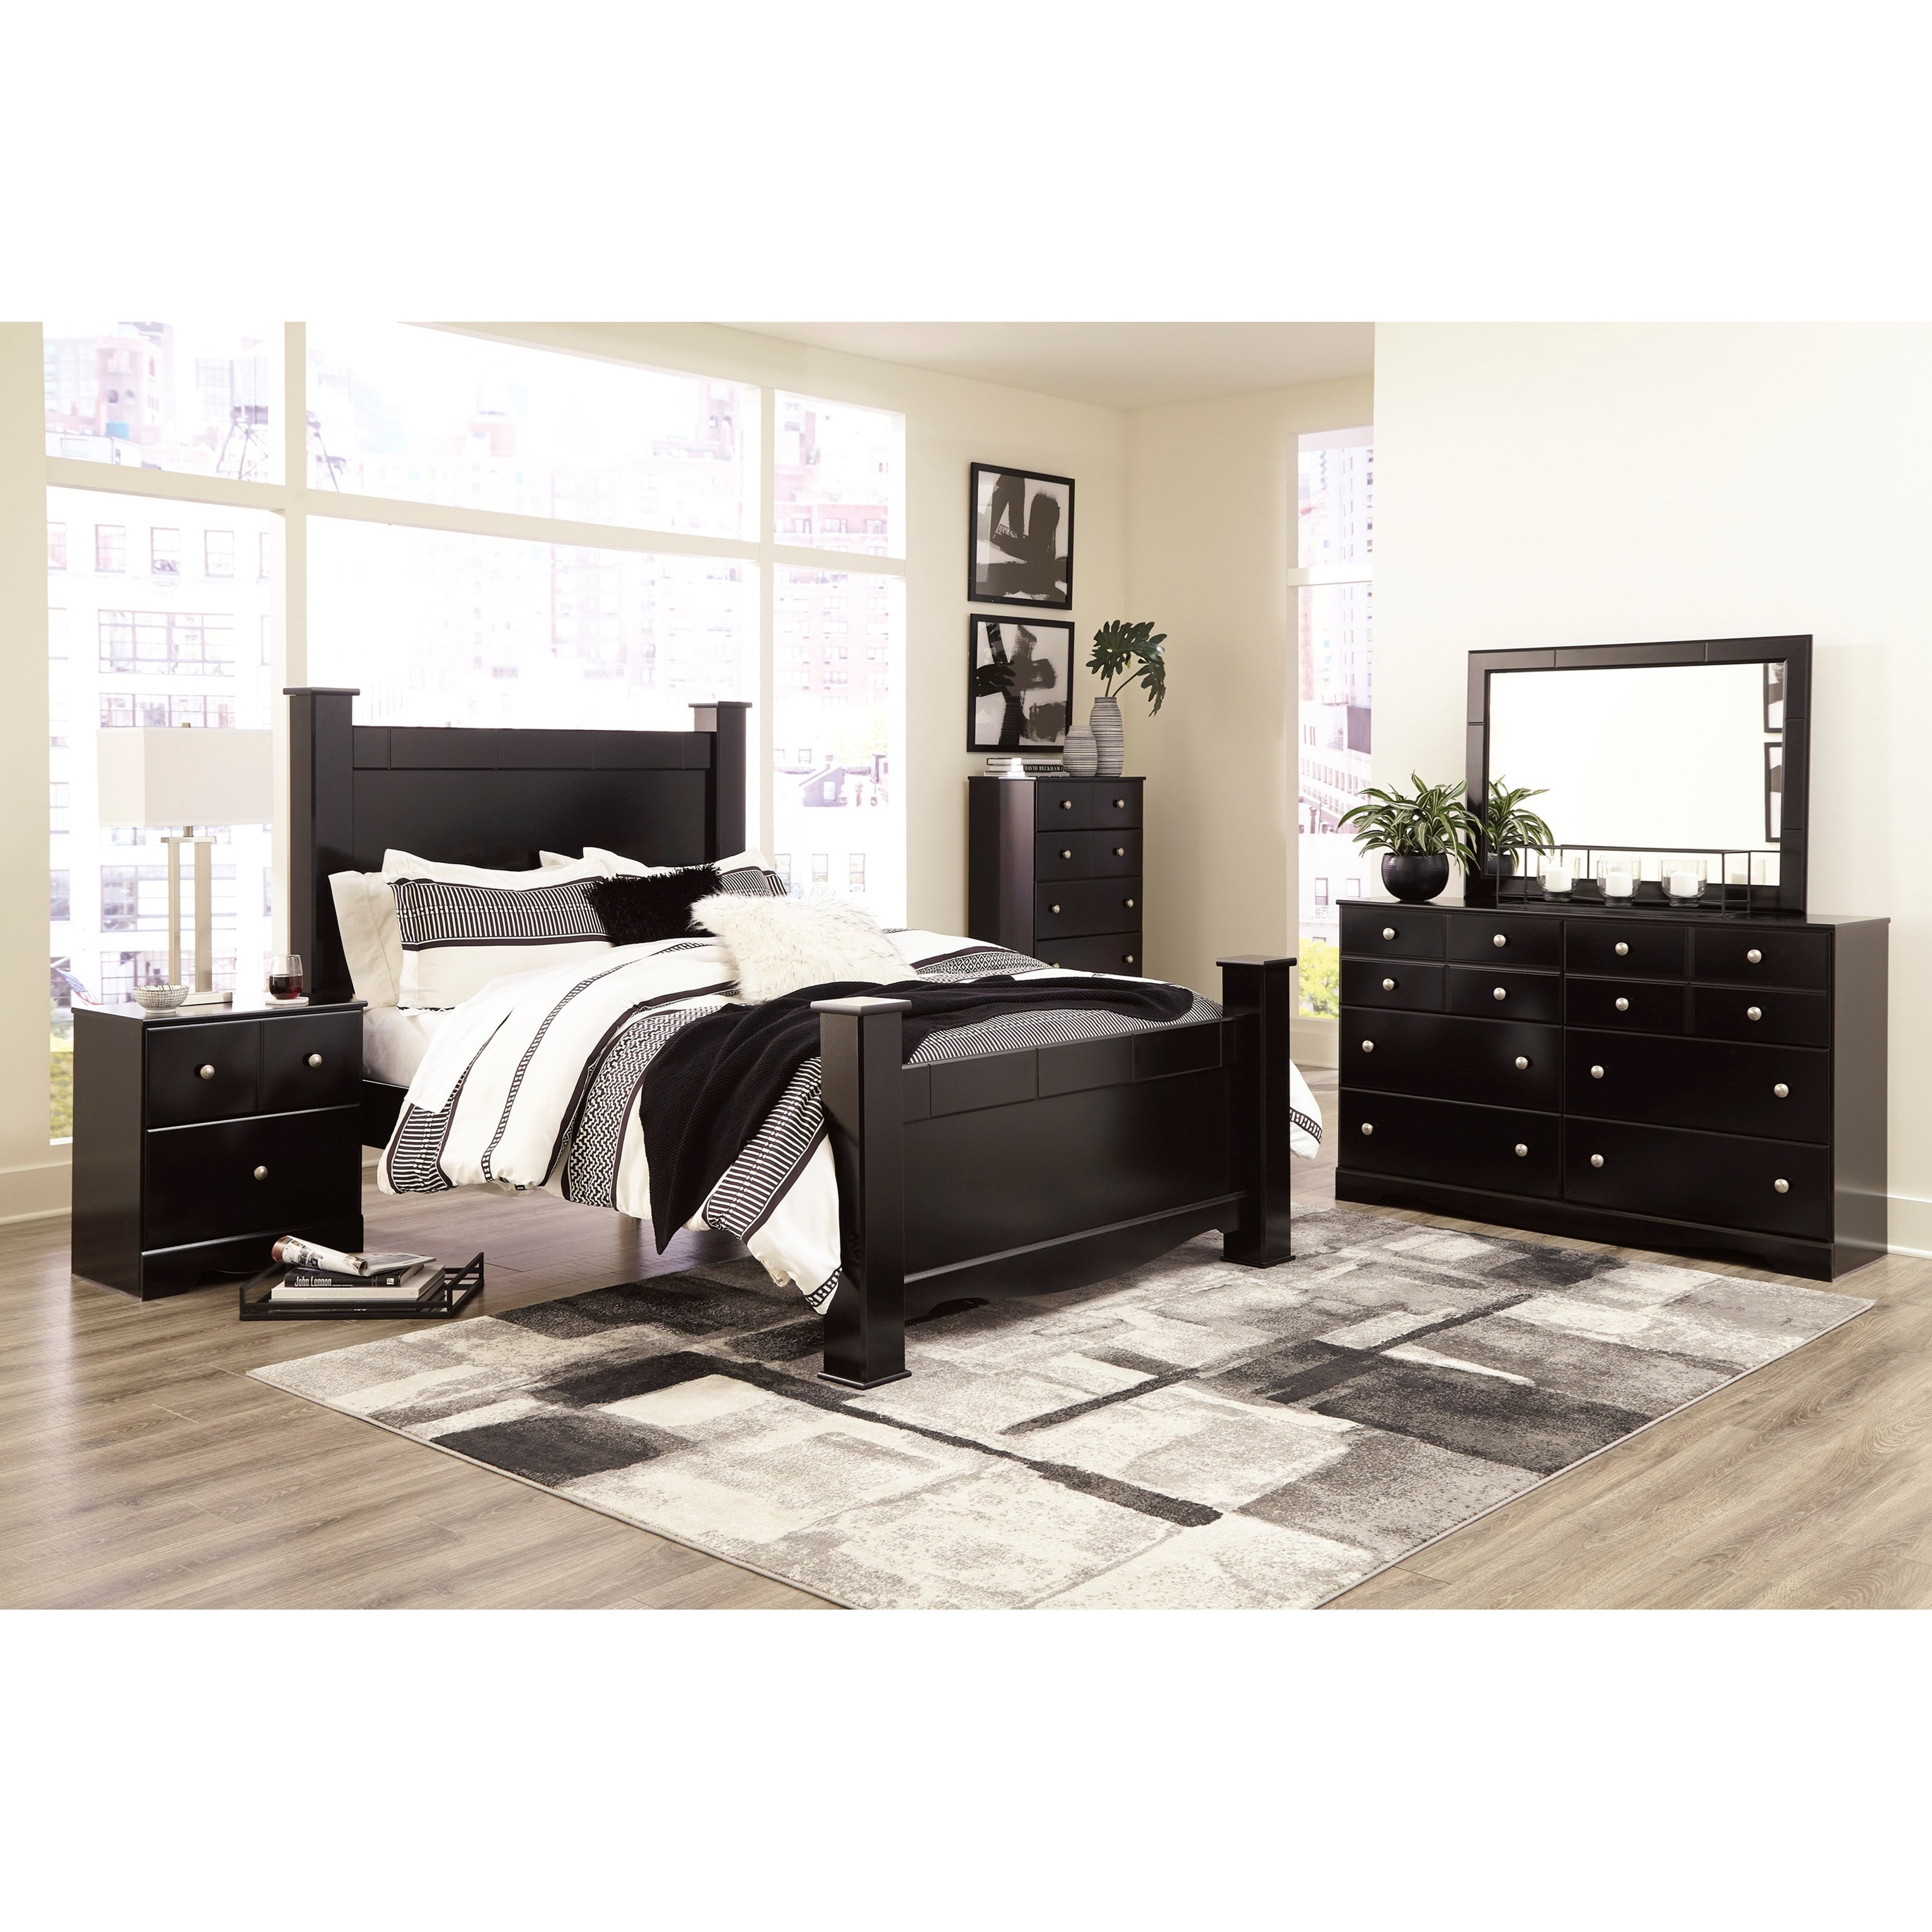 Mirlotown Queen Poster Bedroom Group by Signature Design by Ashley at Northeast Factory Direct